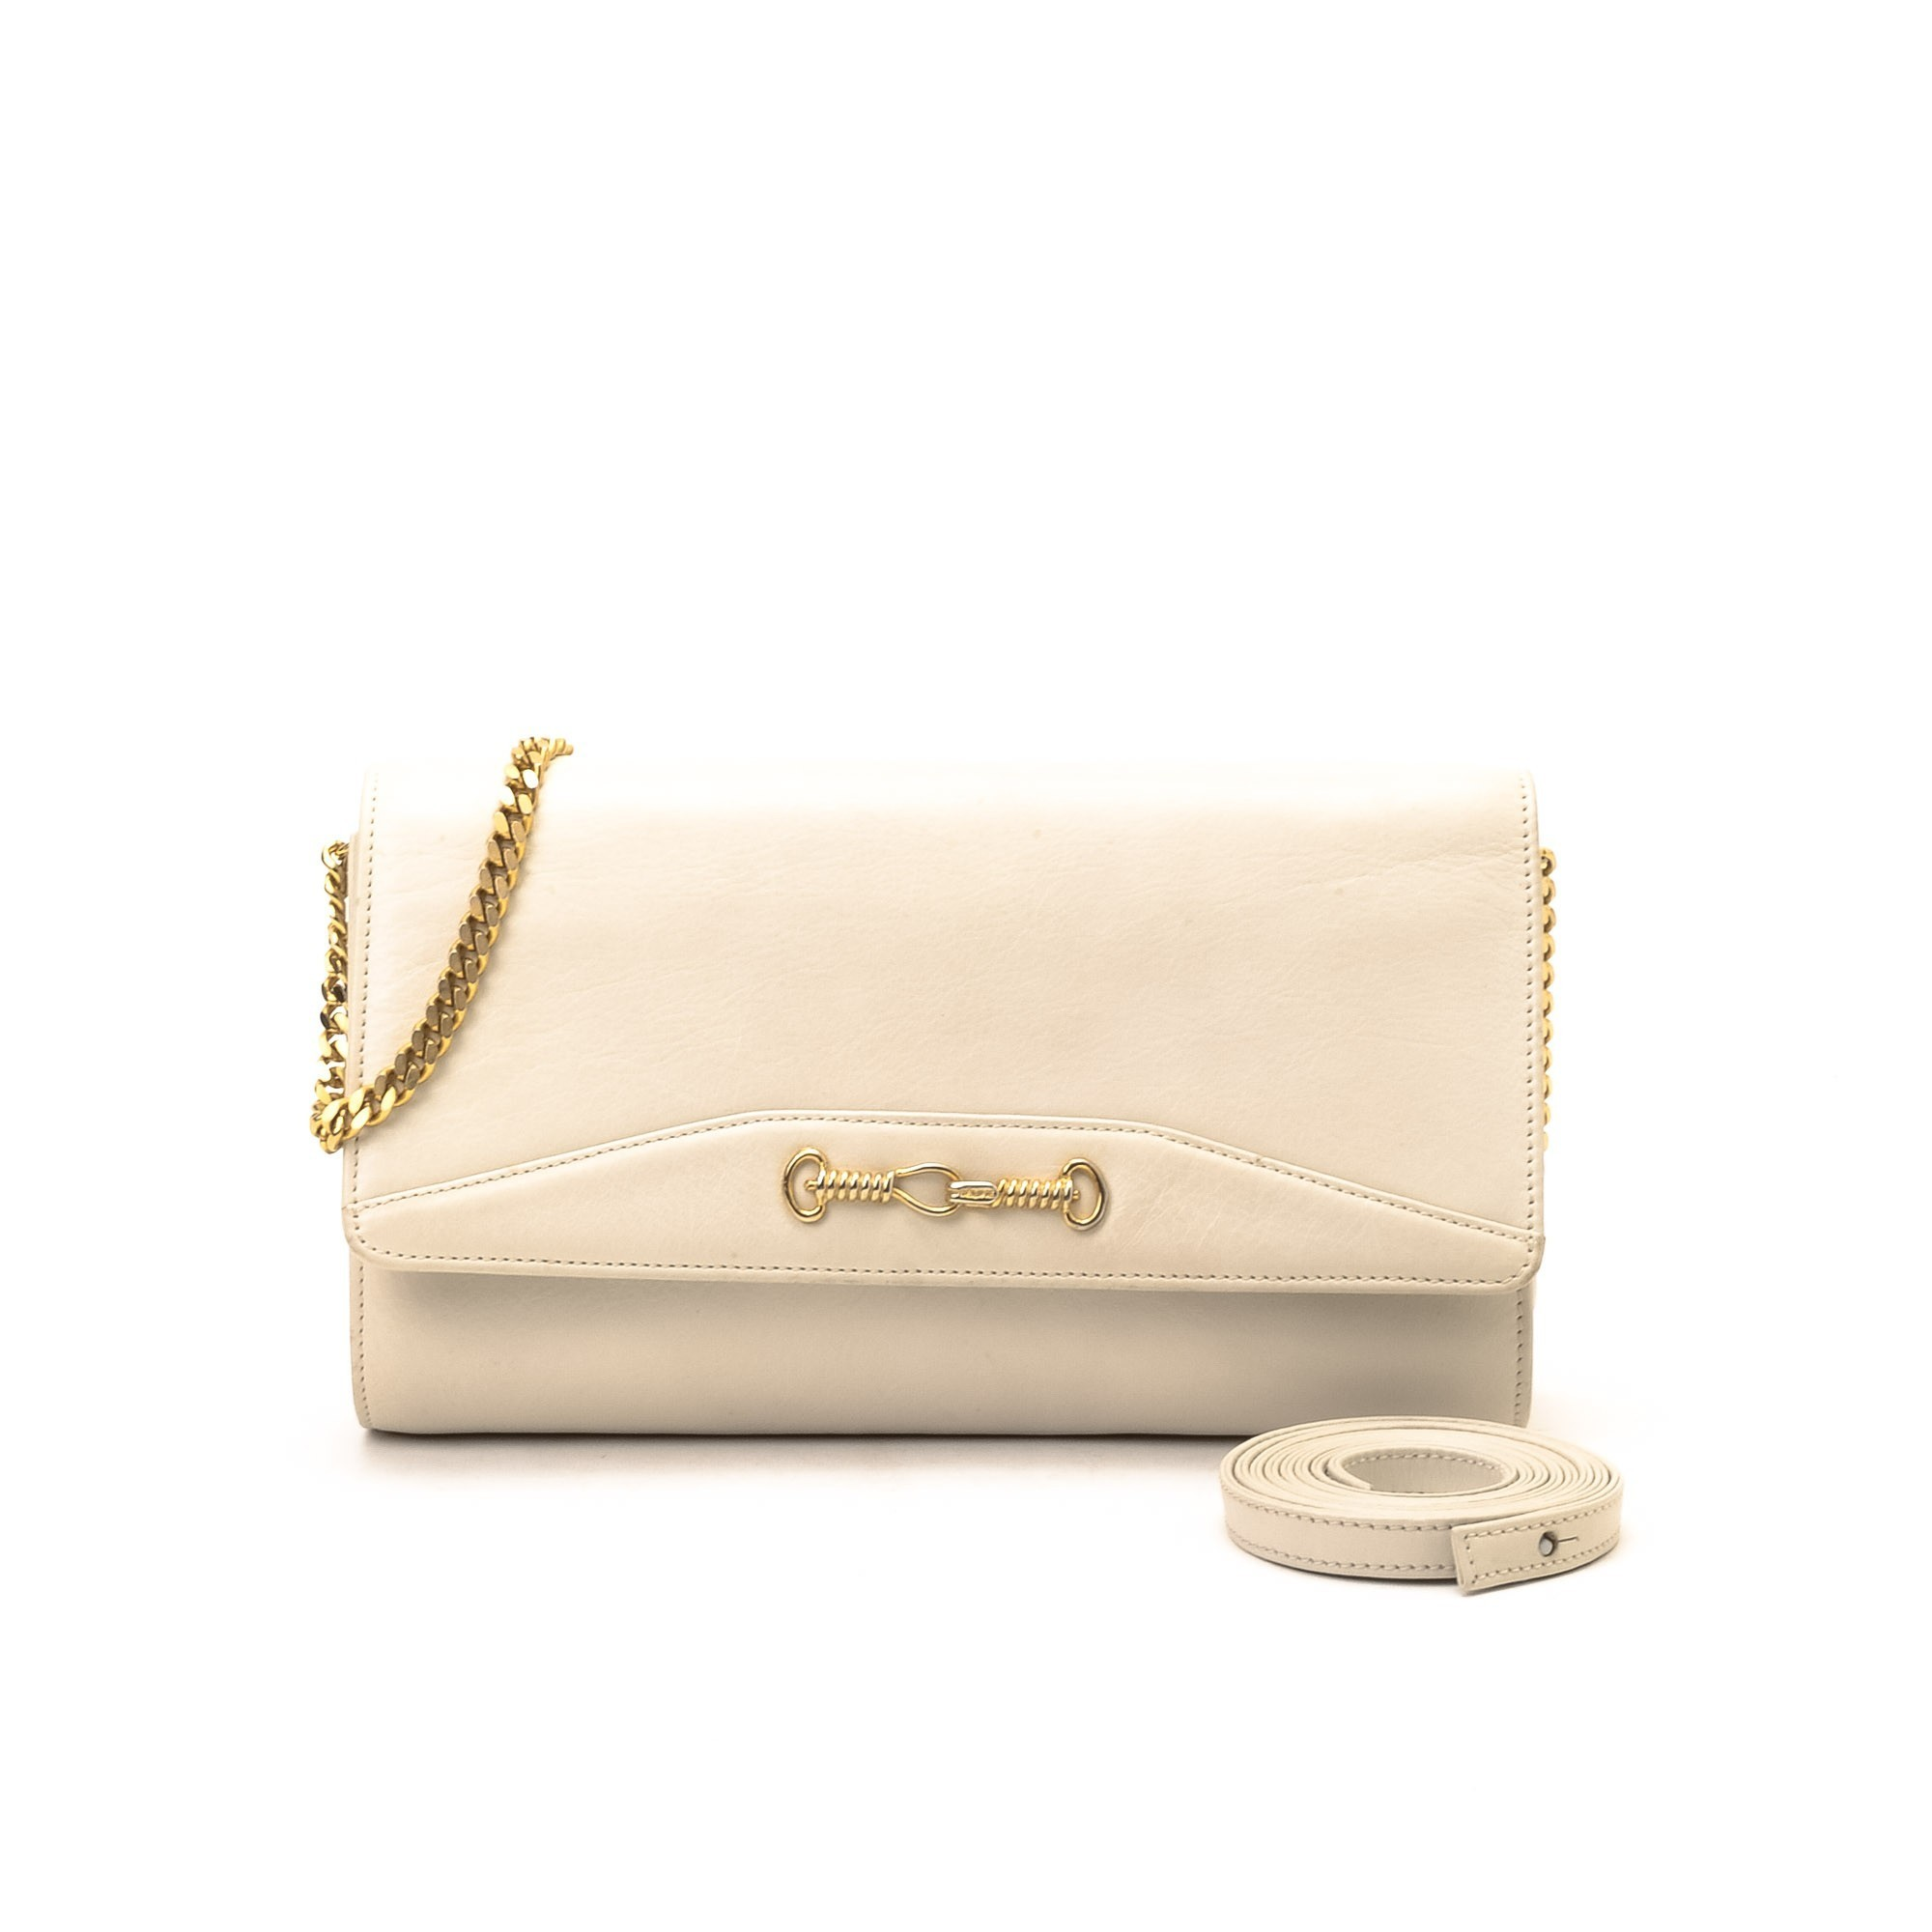 celine phantom luggage tote replica - C��LINE Two Way Bag Ivory Leather Handbag - LXR&CO Vintage Luxury